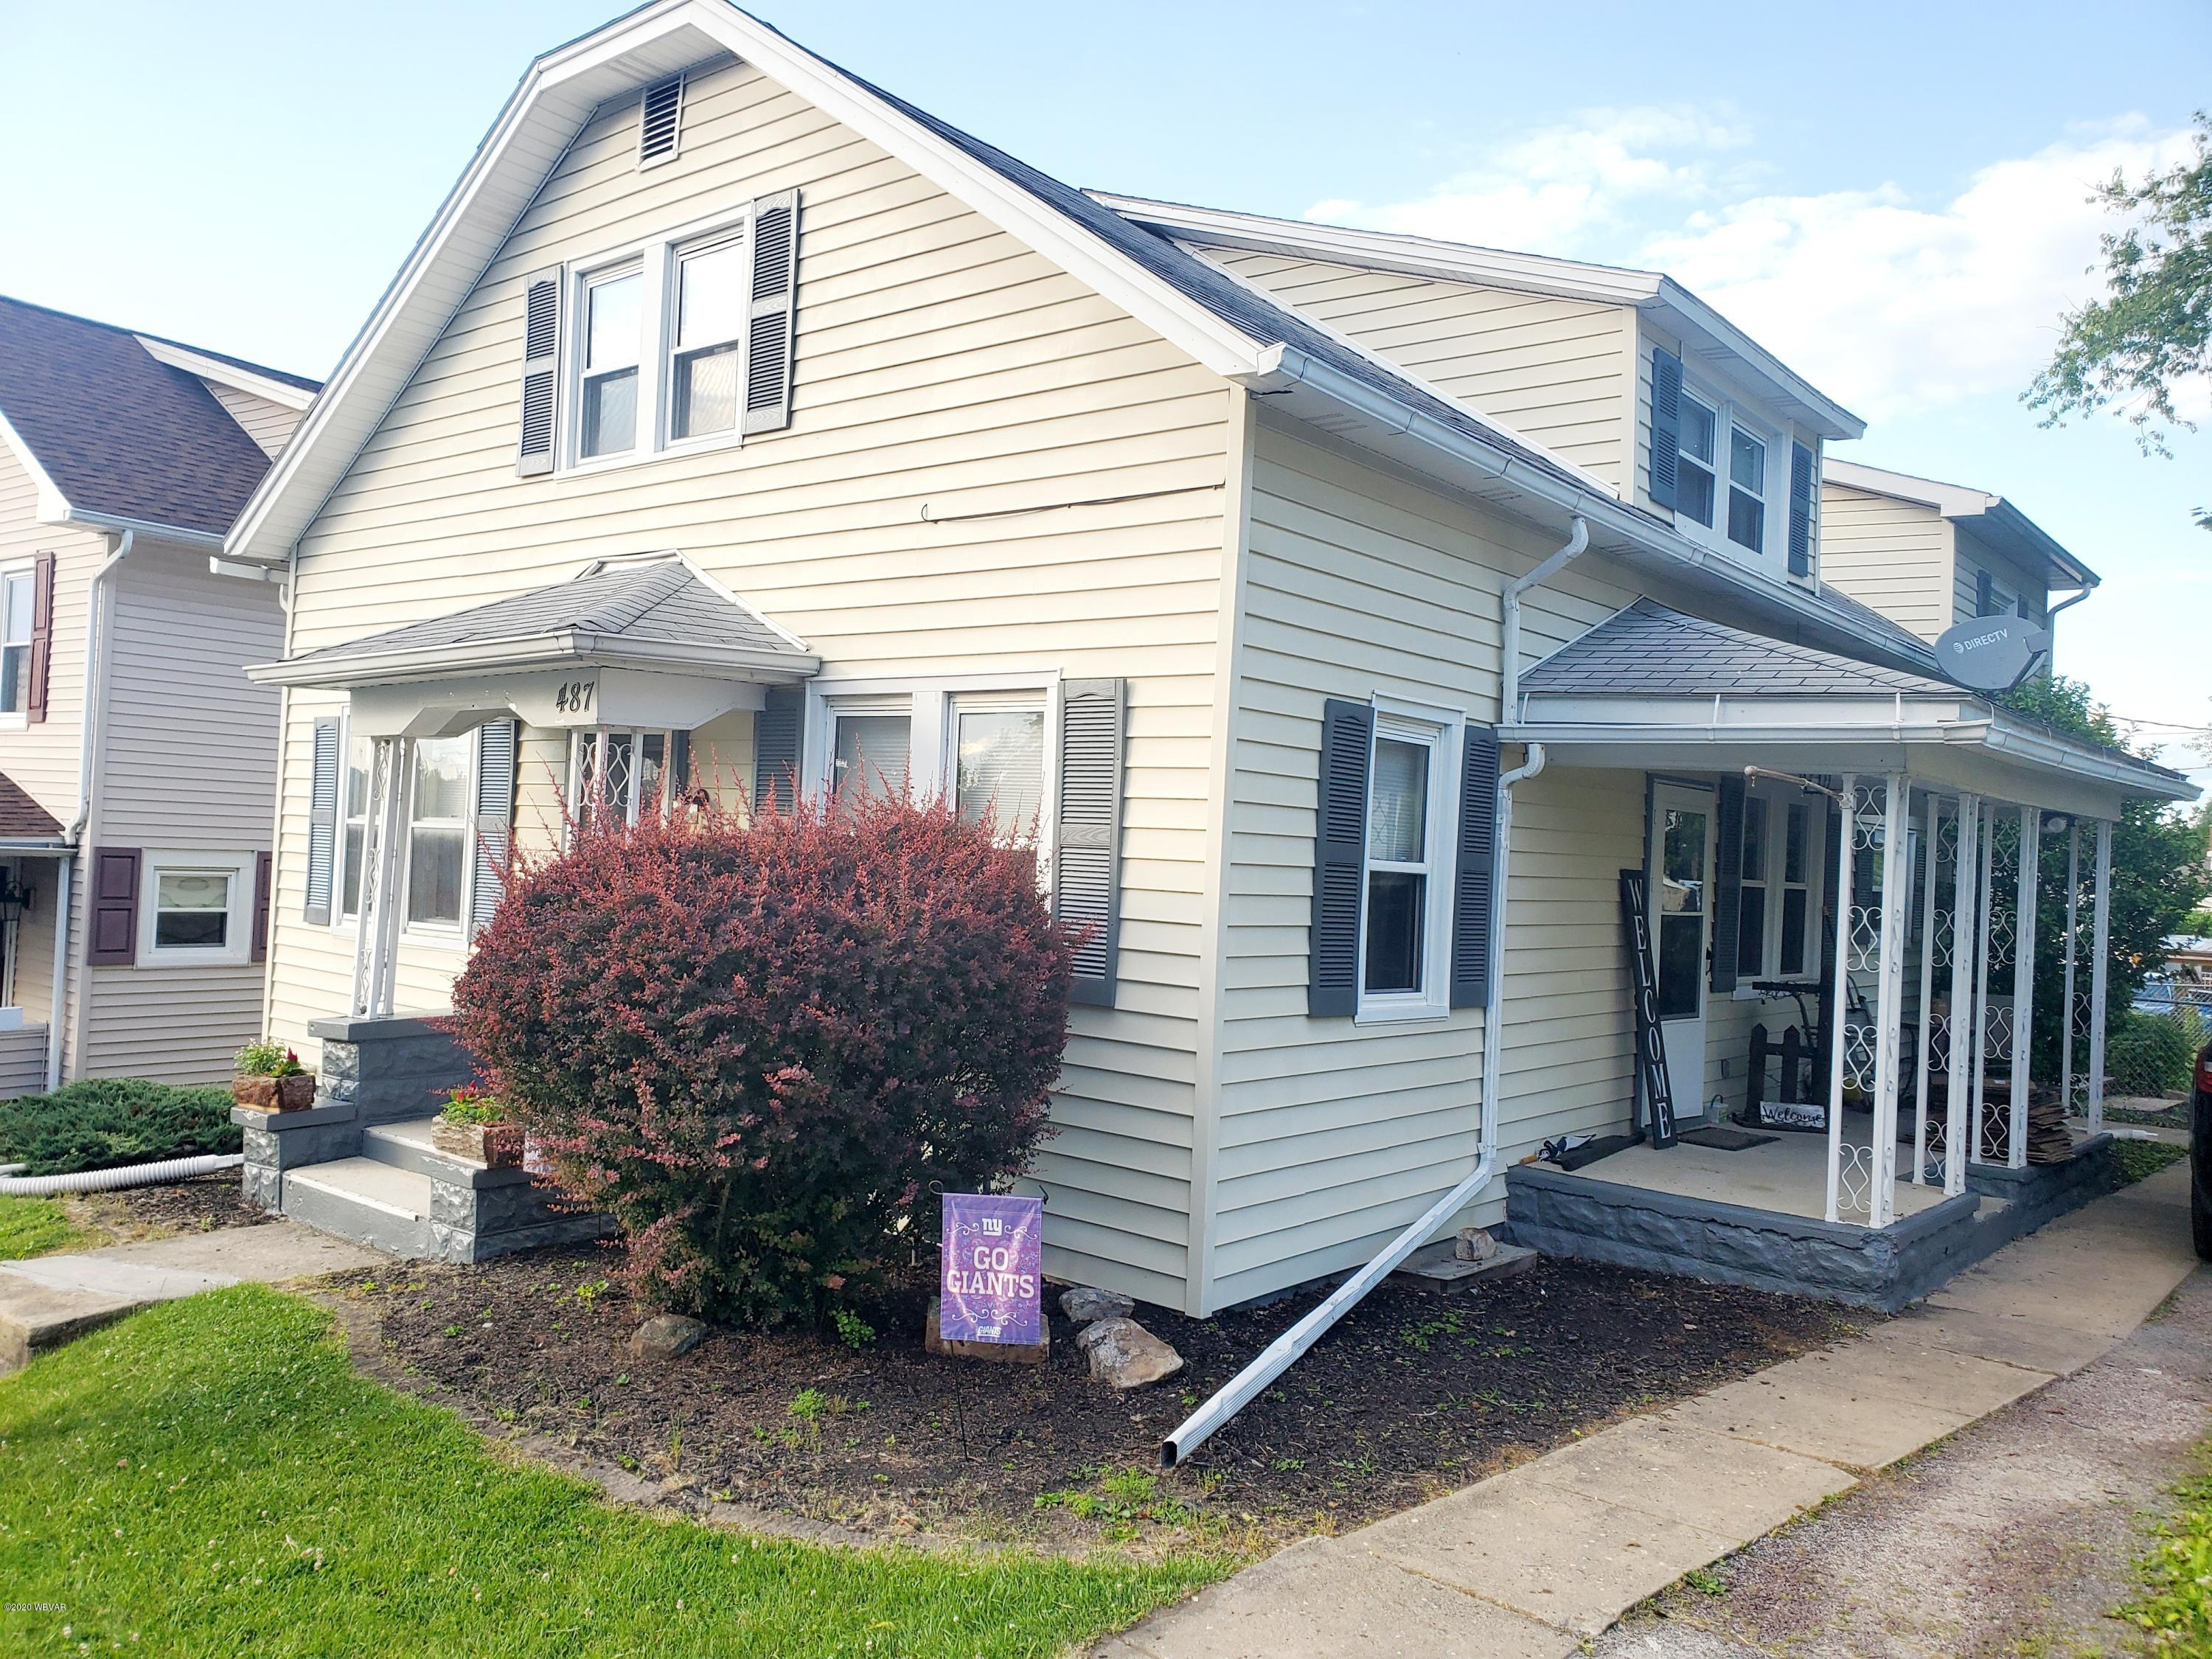 487 WINTHROP STREET, S. Williamsport, PA 17702, 3 Bedrooms Bedrooms, ,2 BathroomsBathrooms,Residential,For sale,WINTHROP,WB-90143